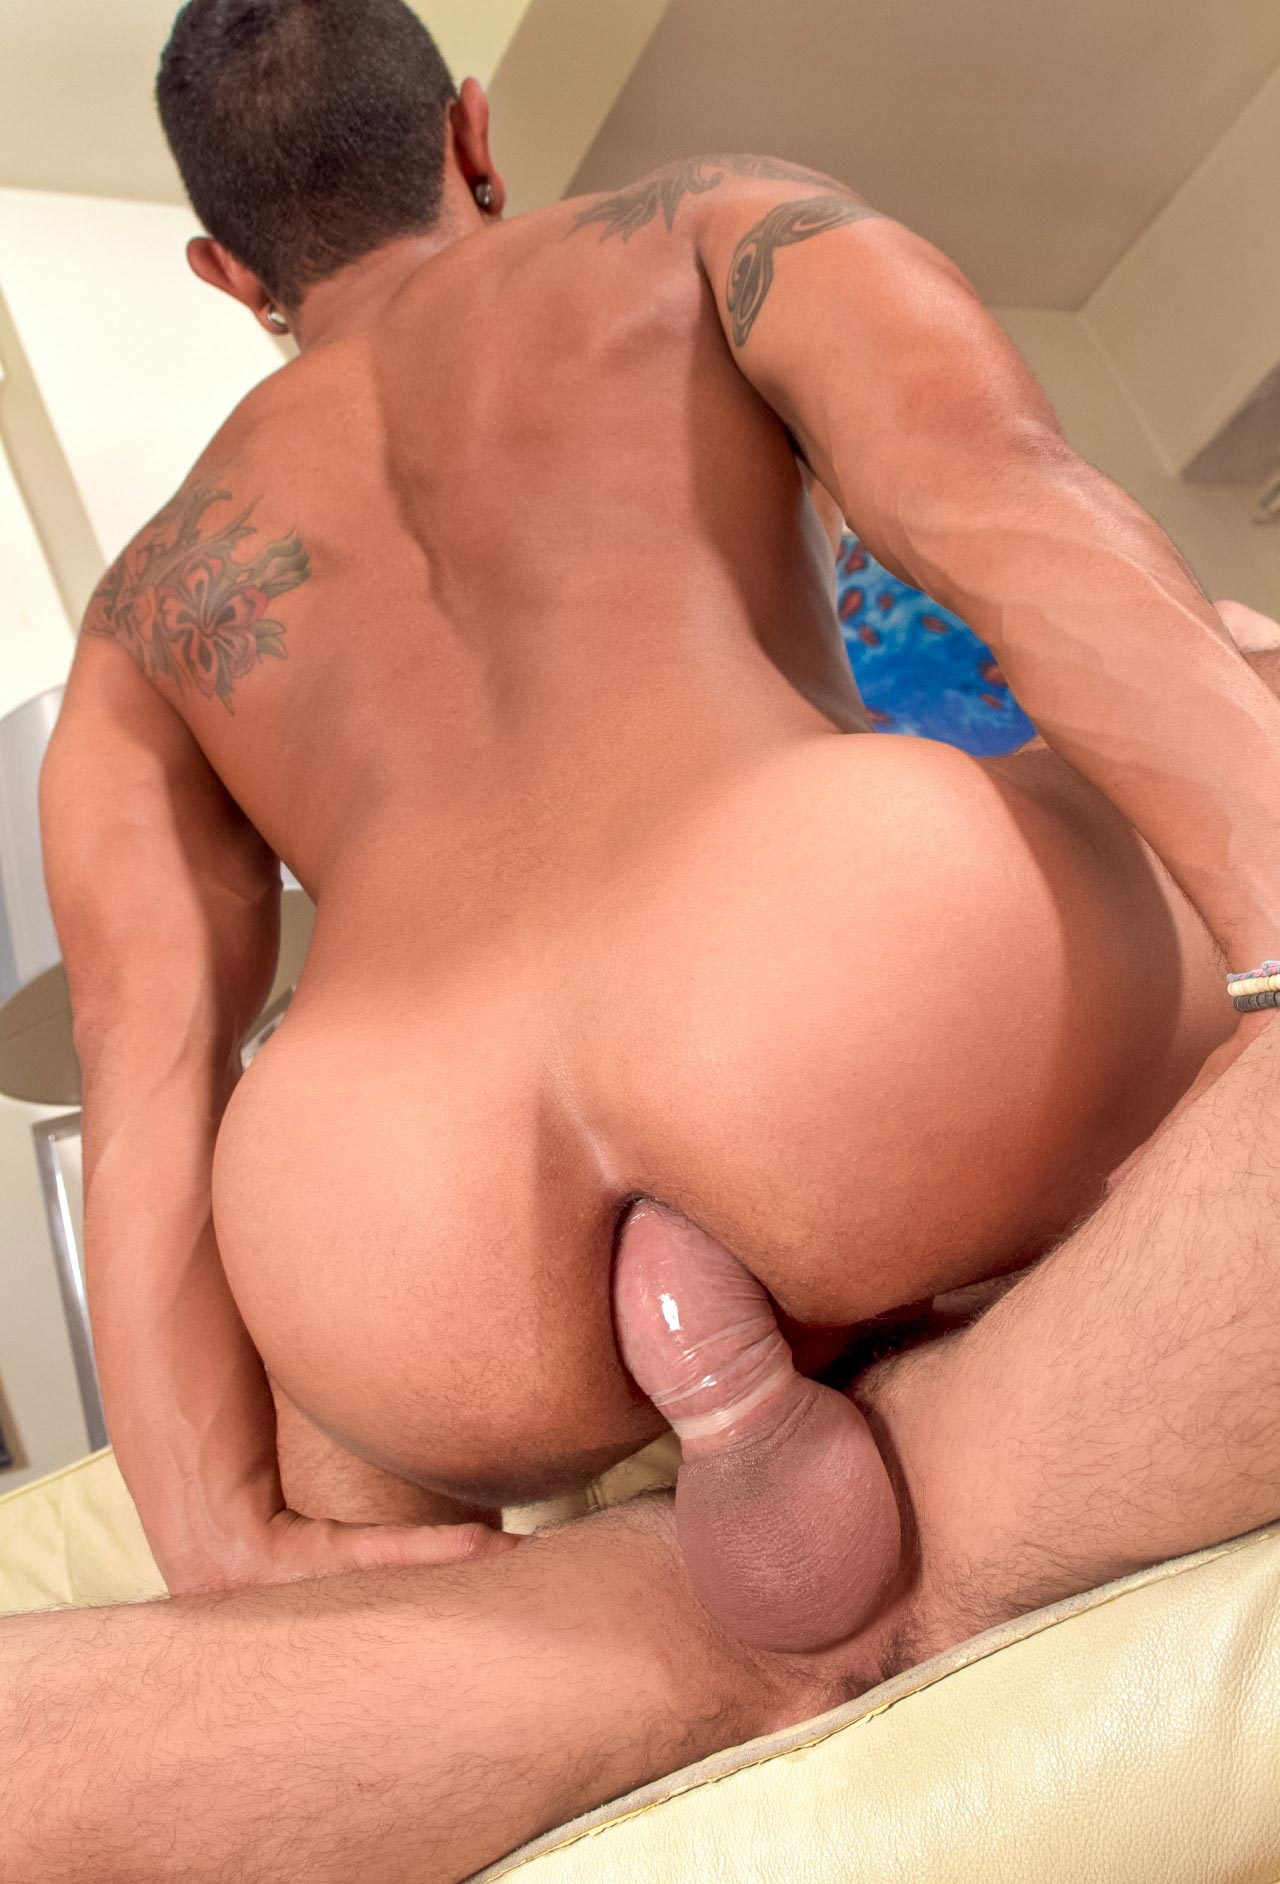 pollas grandes gay sex video